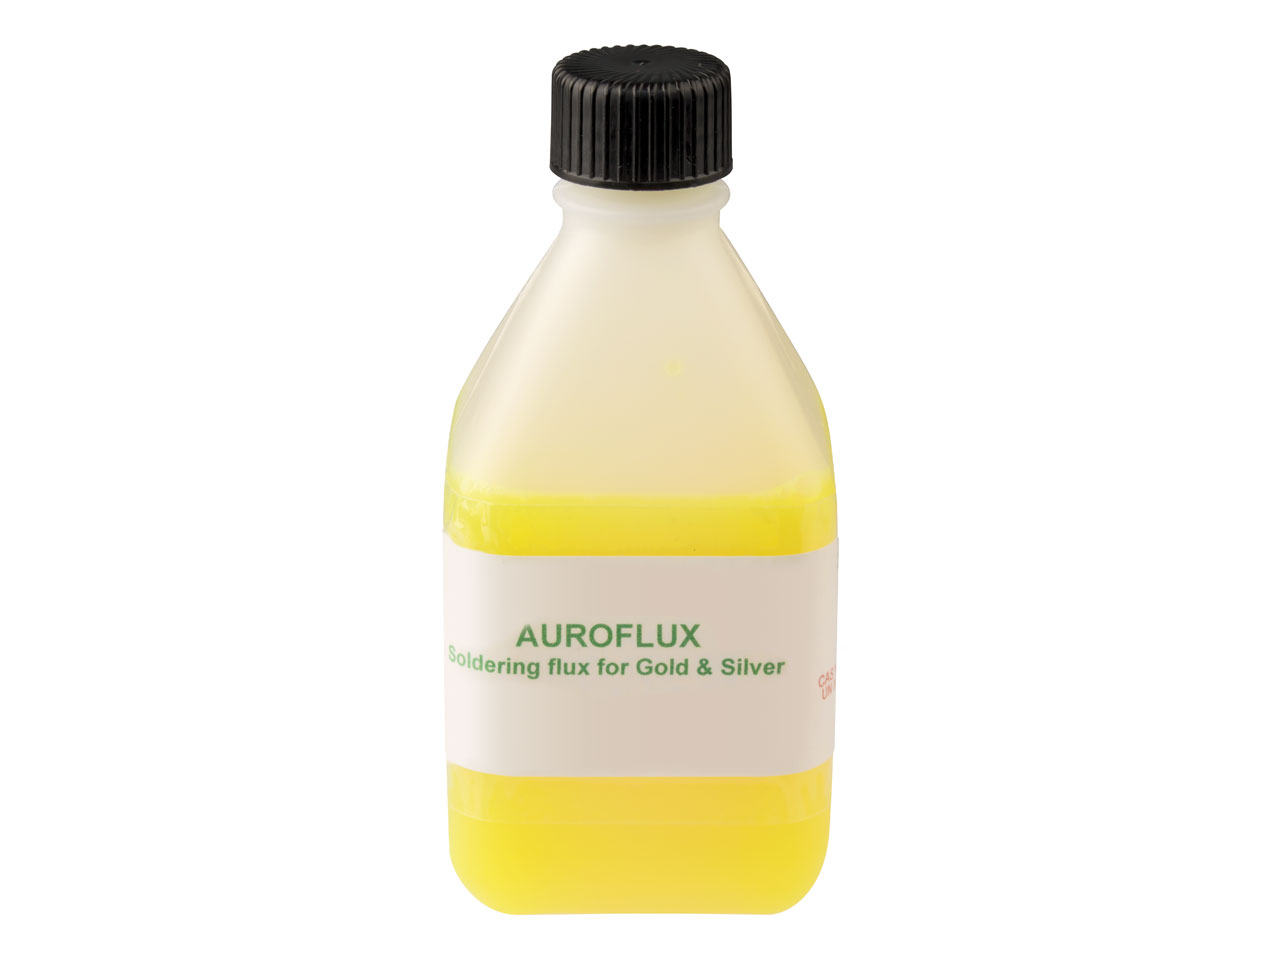 Auroflux Soldering Fluid 250ml